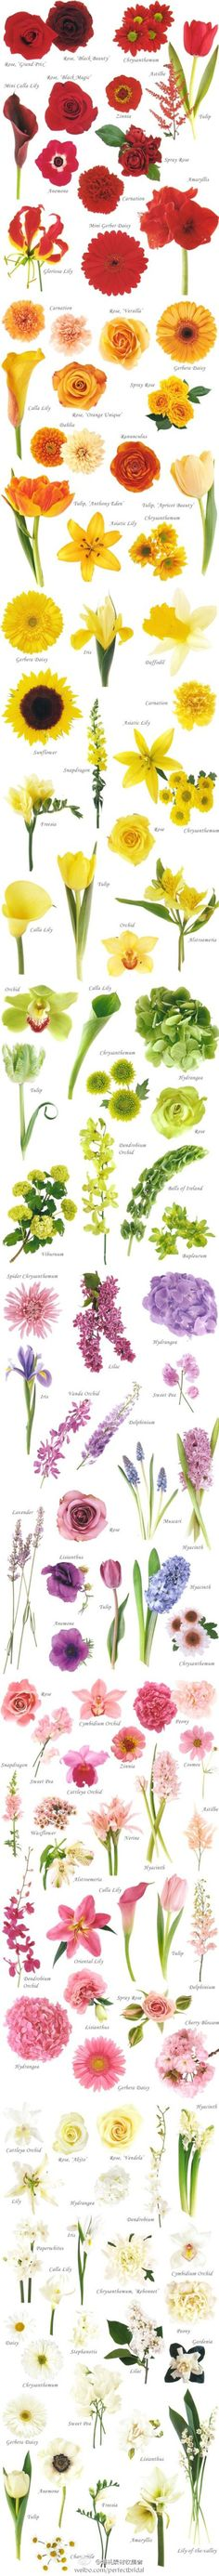 A Rainbow of Colours: A Handy Flower Guide